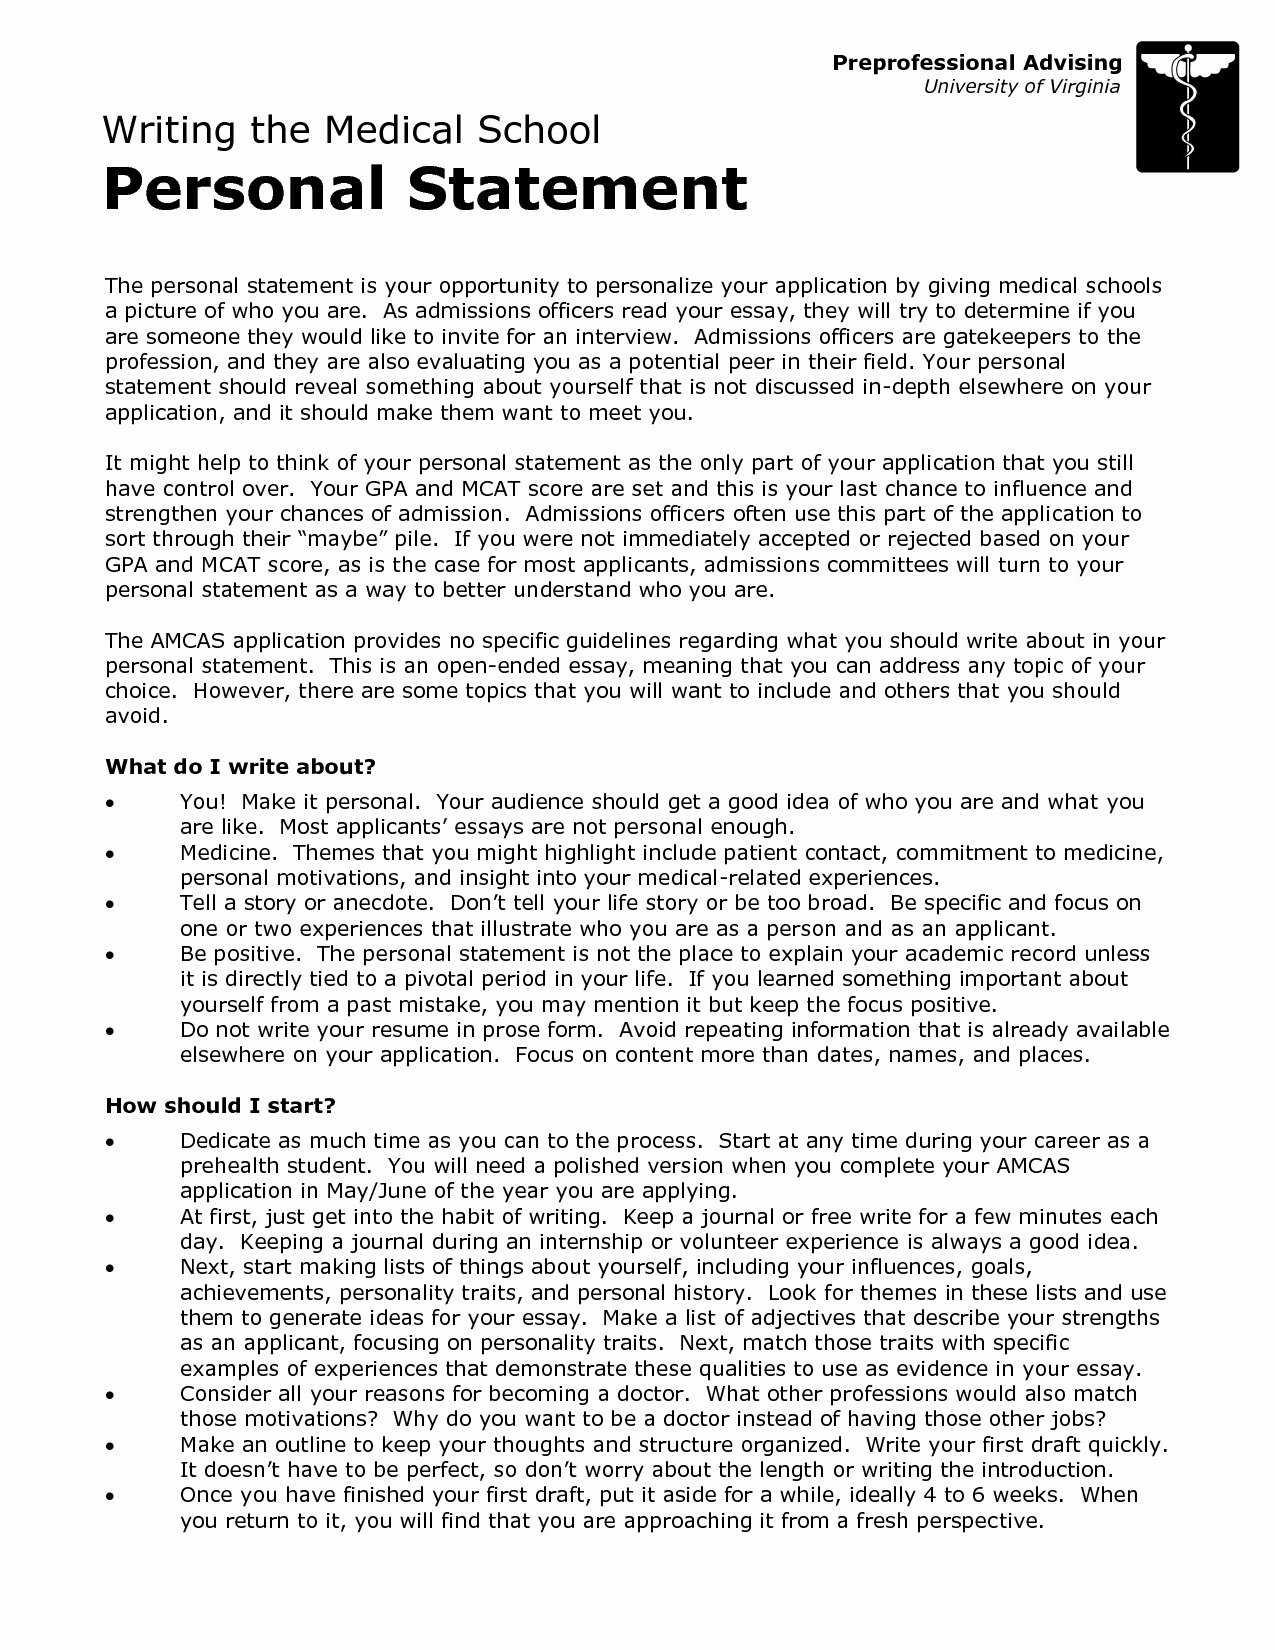 Academic Personal Statement Example Awesome 6th form College Application Personal Statement